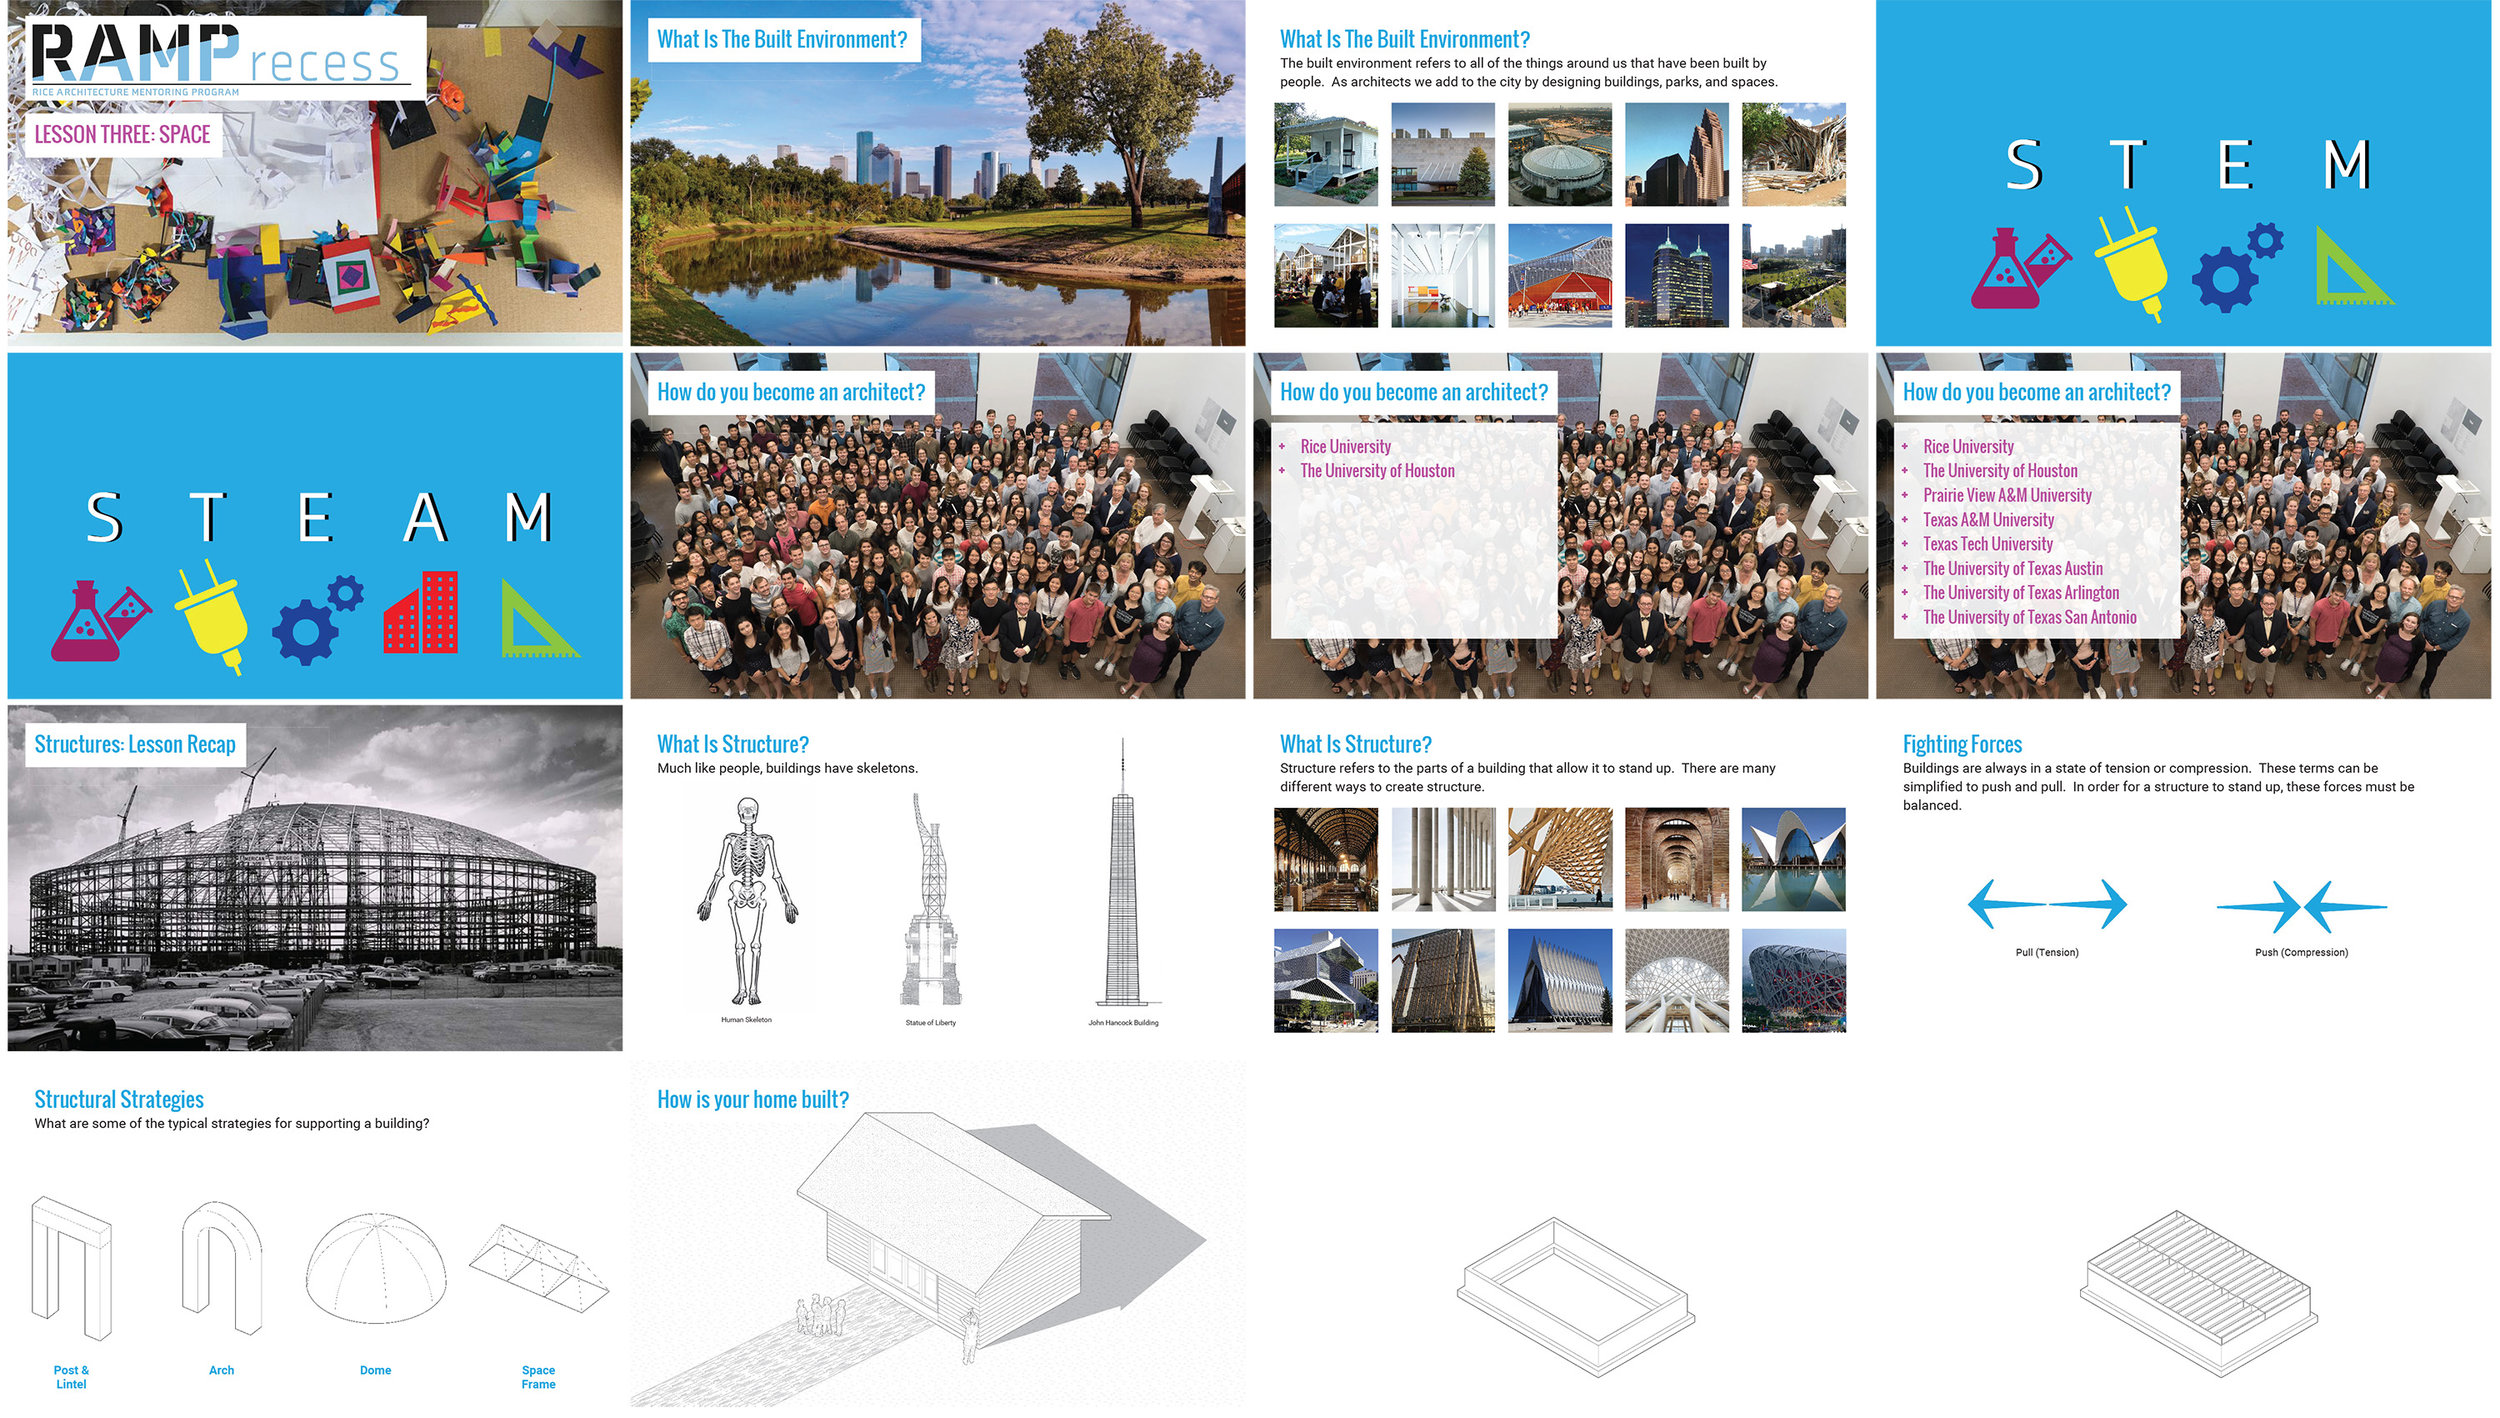 Keegan Hebert RAMP Recess Architecture Program